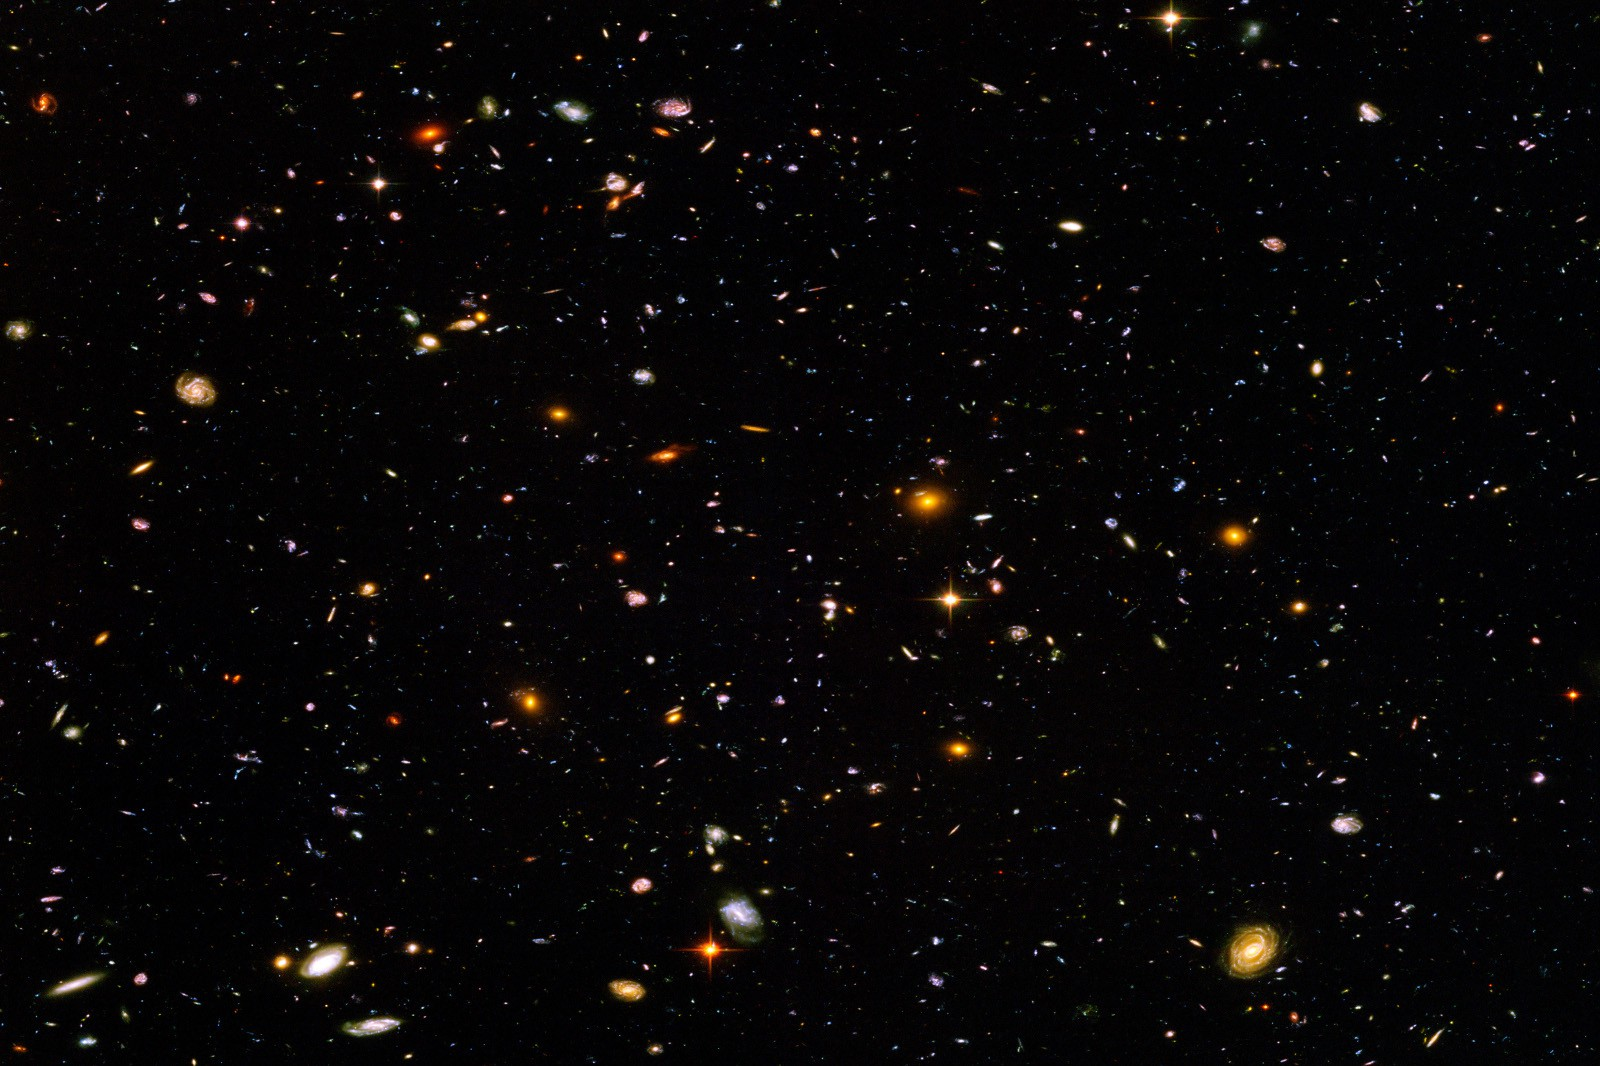 Hubble Ultra Deep Field Full-Resolution 2014 - Pics about ...